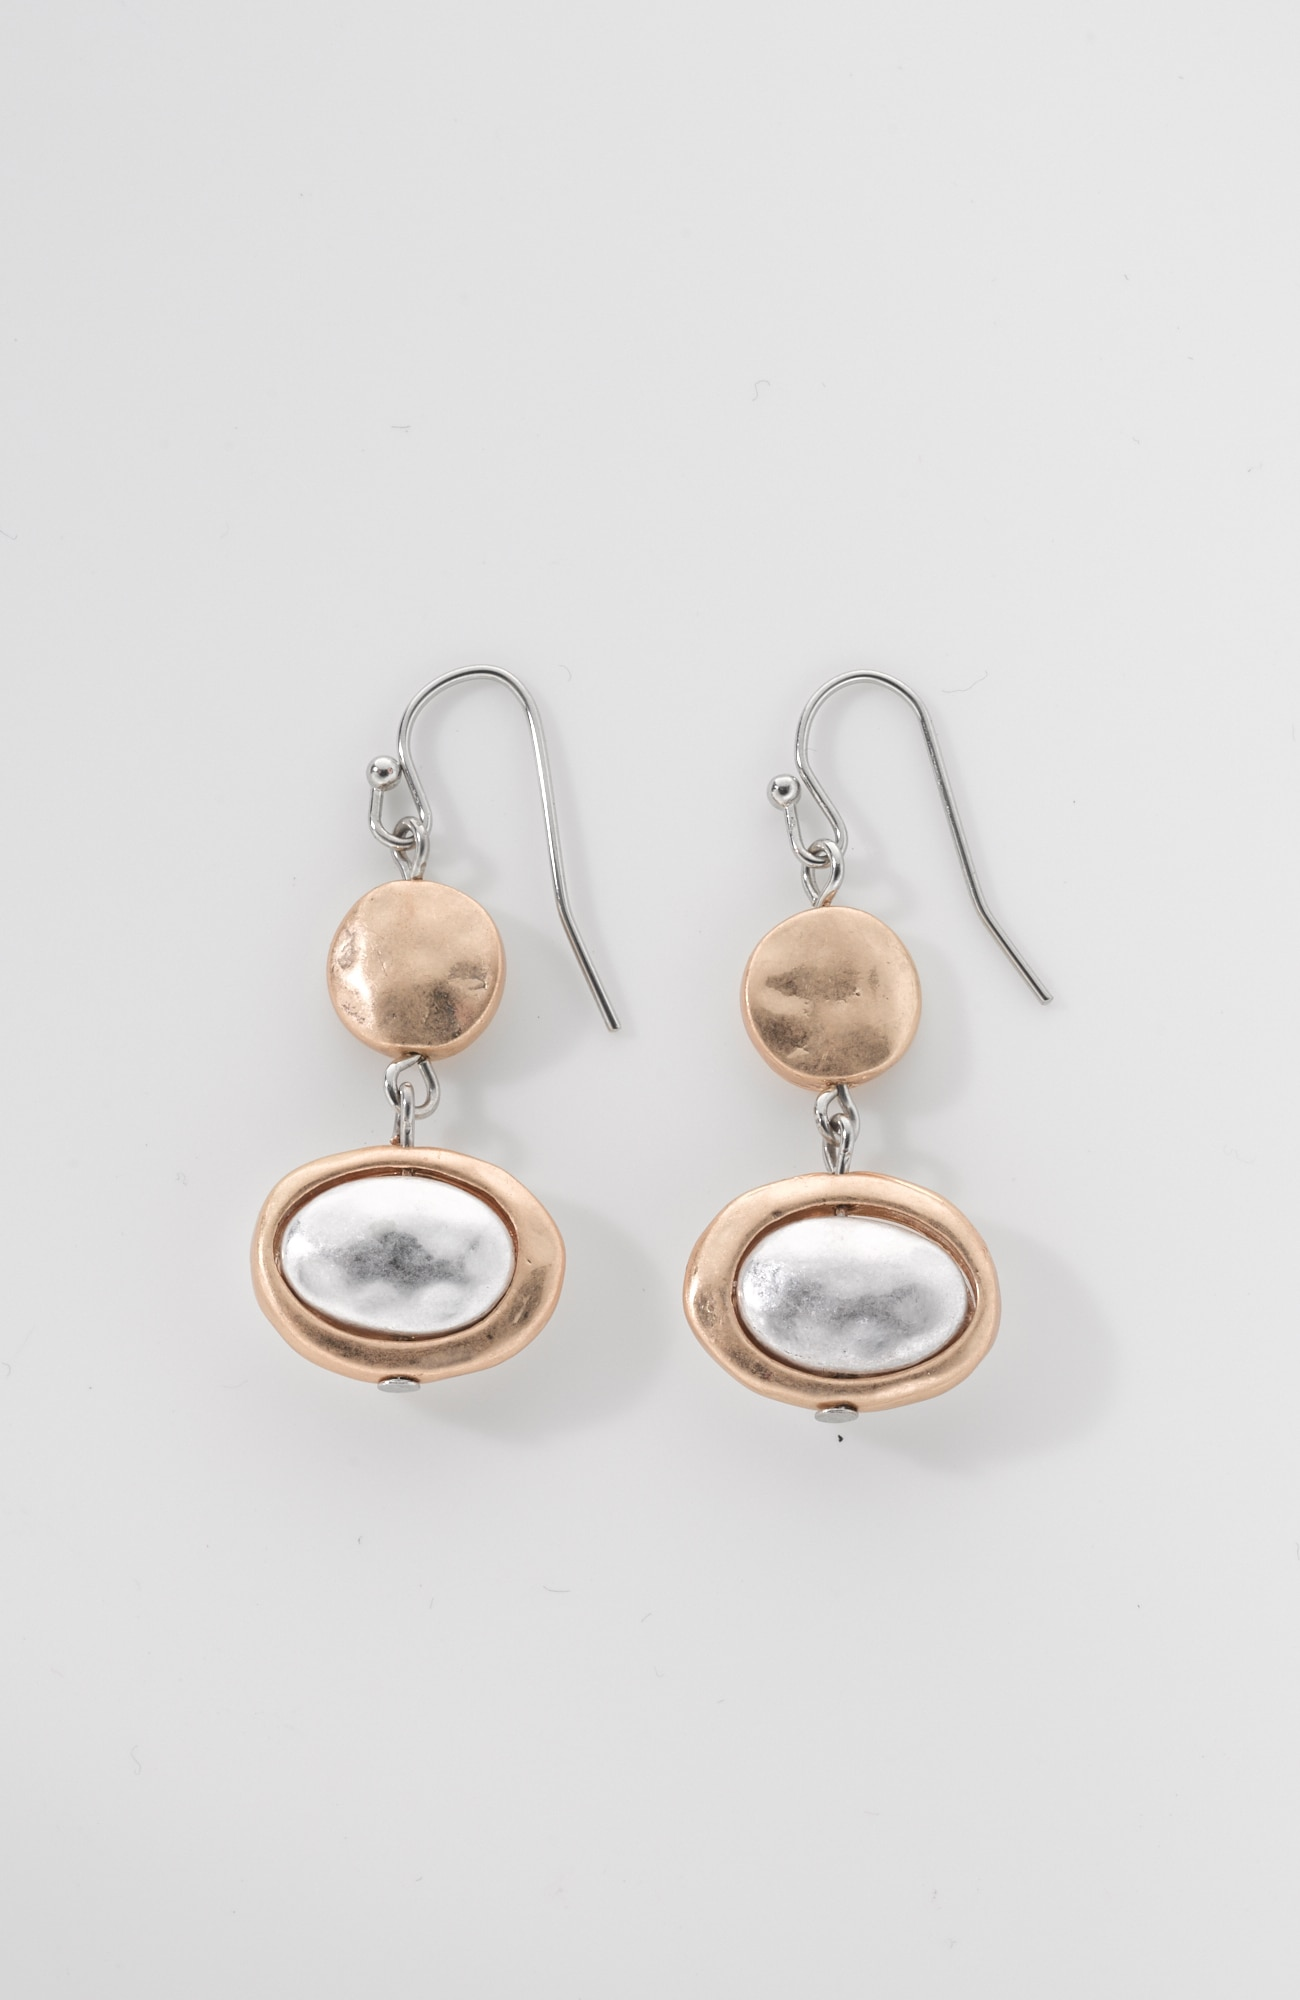 mixed-metal earrings